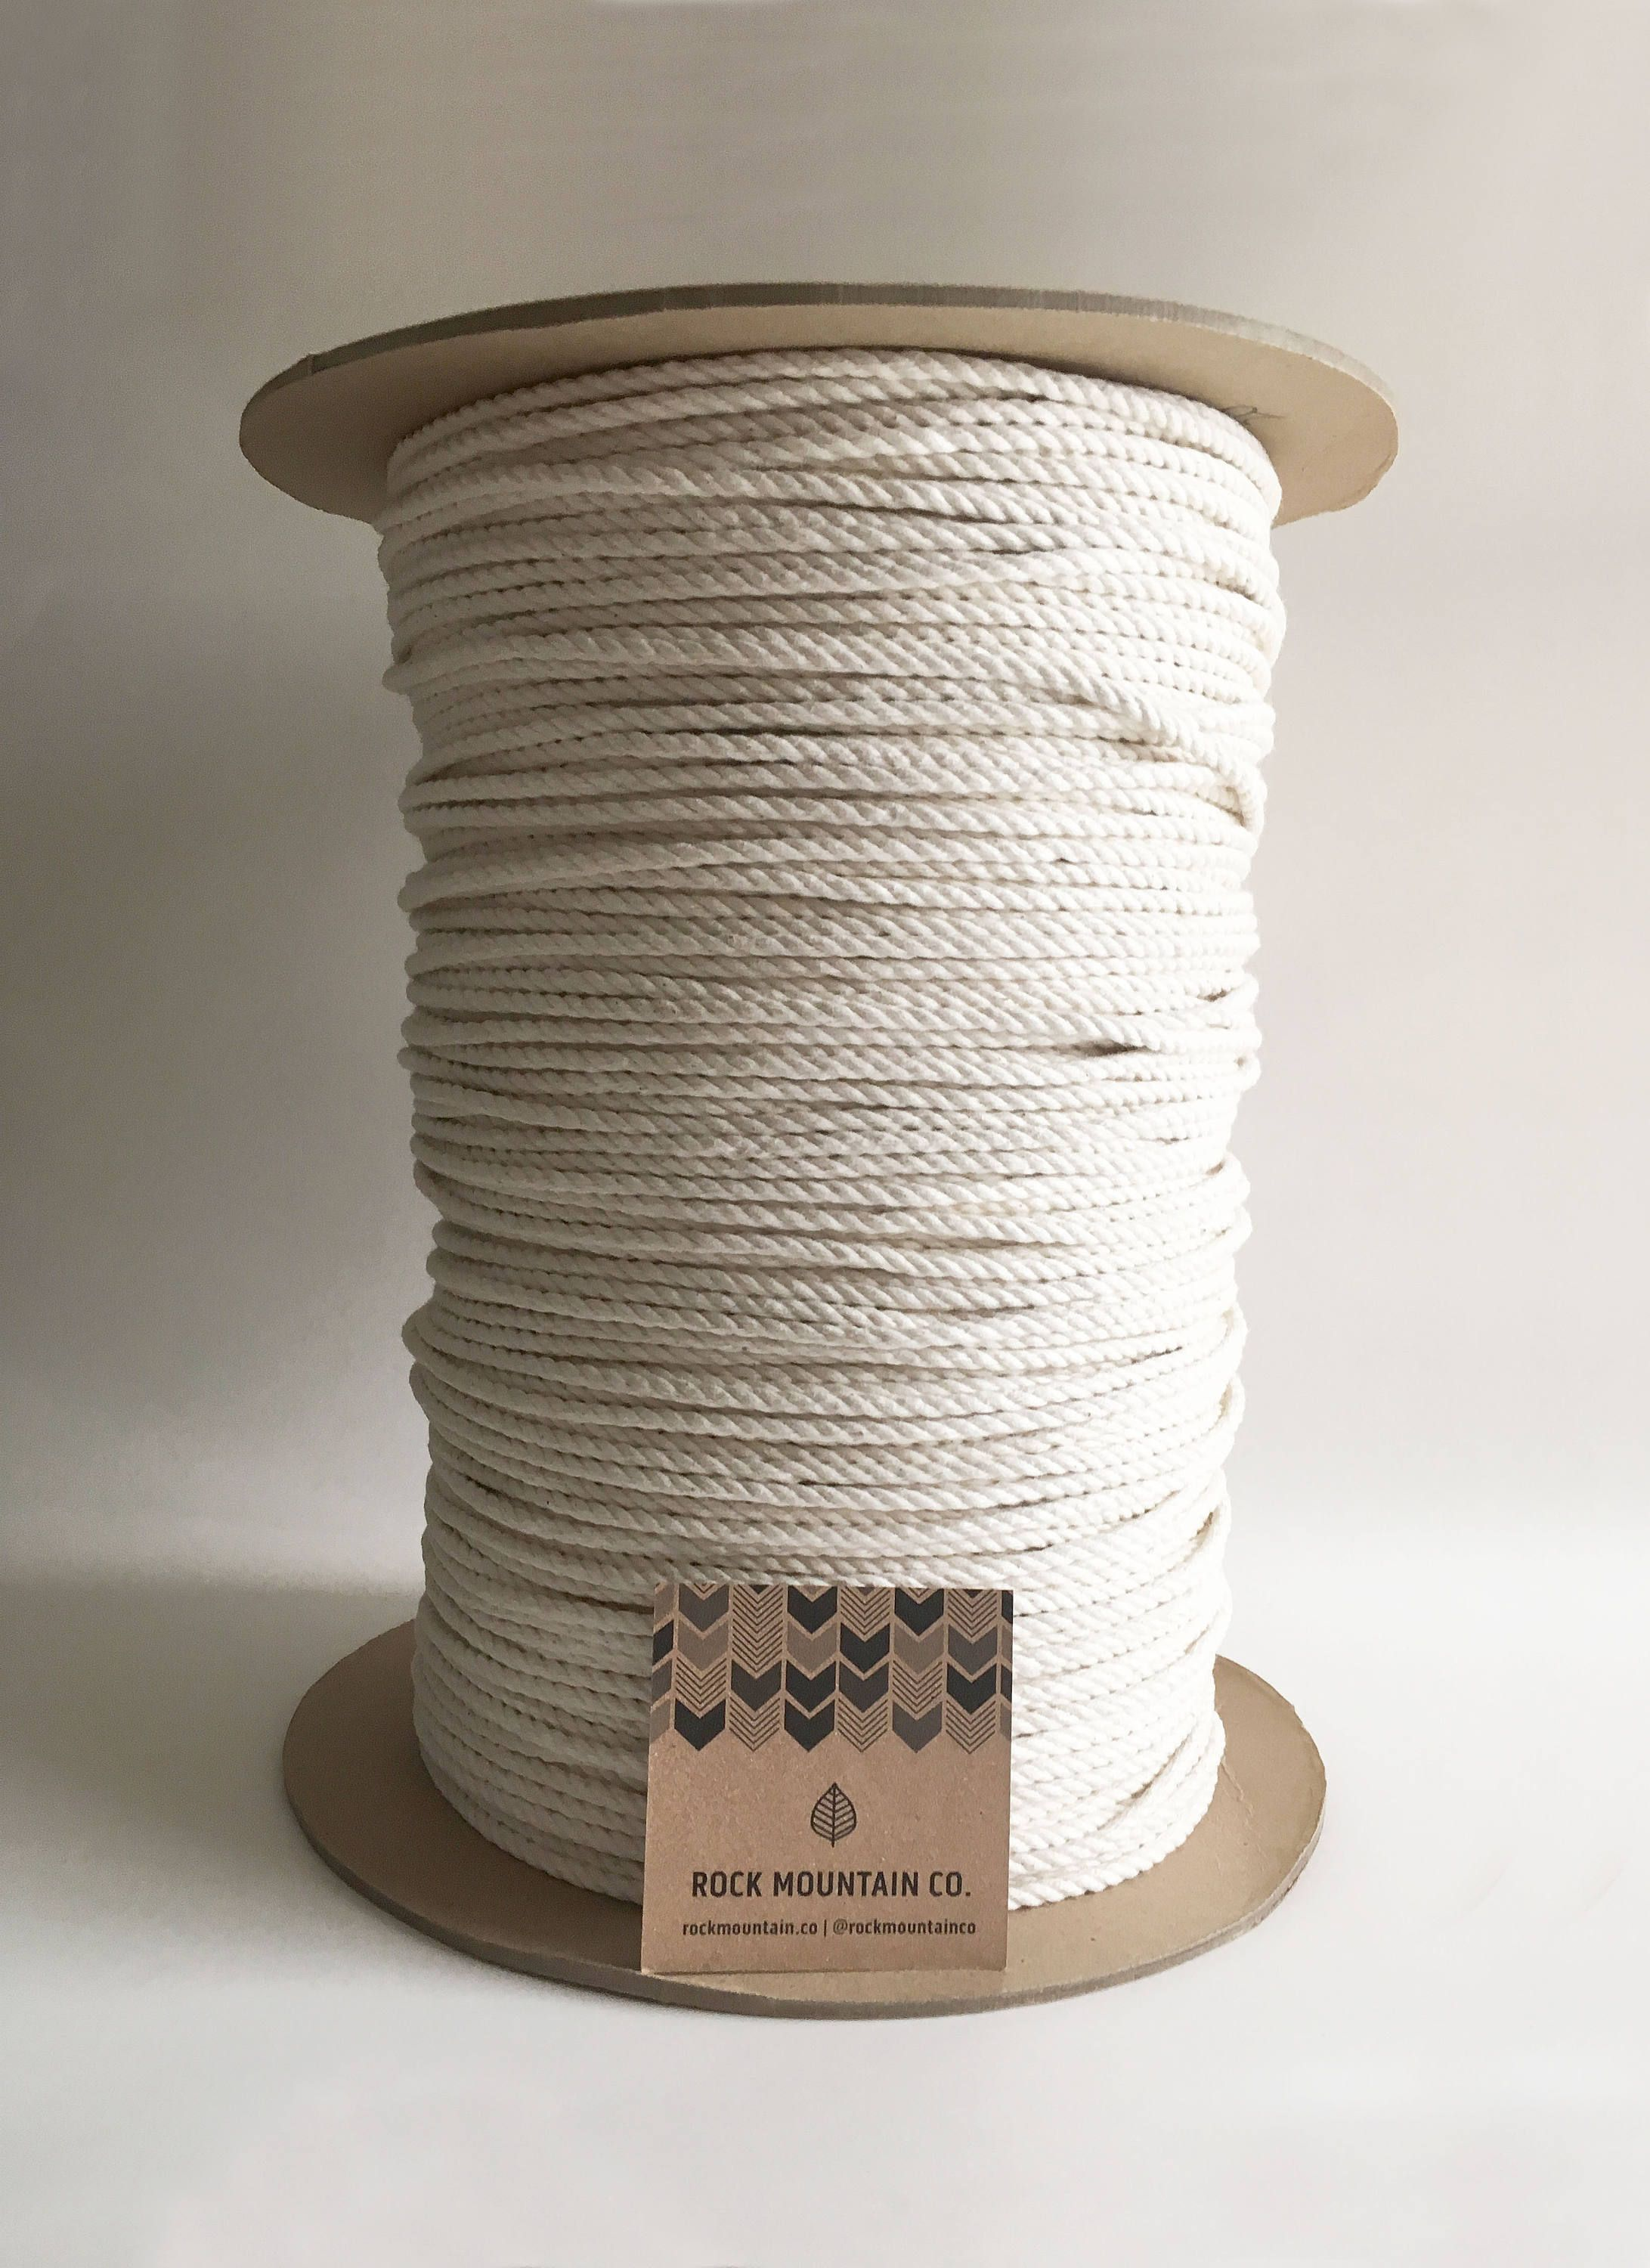 4mm X 1200 Ft 3 Strand Macrame Cord 100 Cotton Fiber Art Rope 1 8 3ply Extra Large Bulk Spool Sold By Rockmountainc Macrame Cord Macrame Macrame Supplies